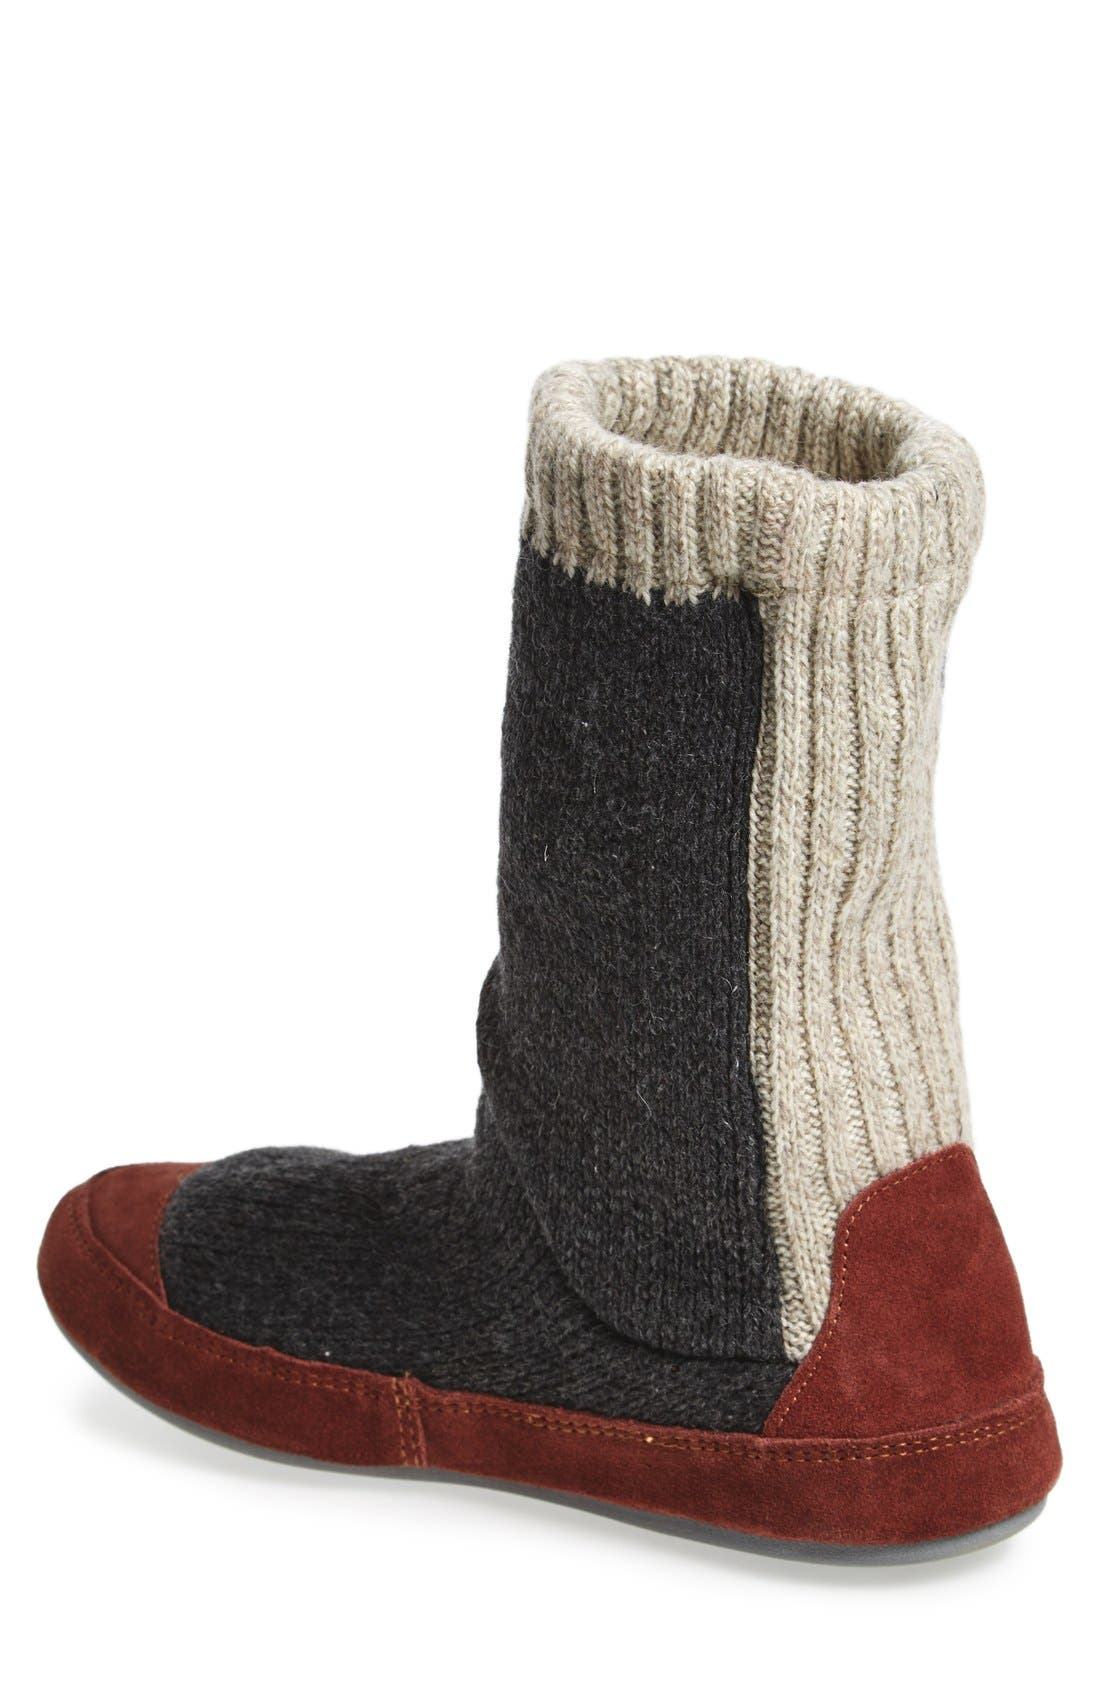 'Slouch Boot' Slipper,                             Alternate thumbnail 5, color,                             CHARCOAL RAGG WOOL